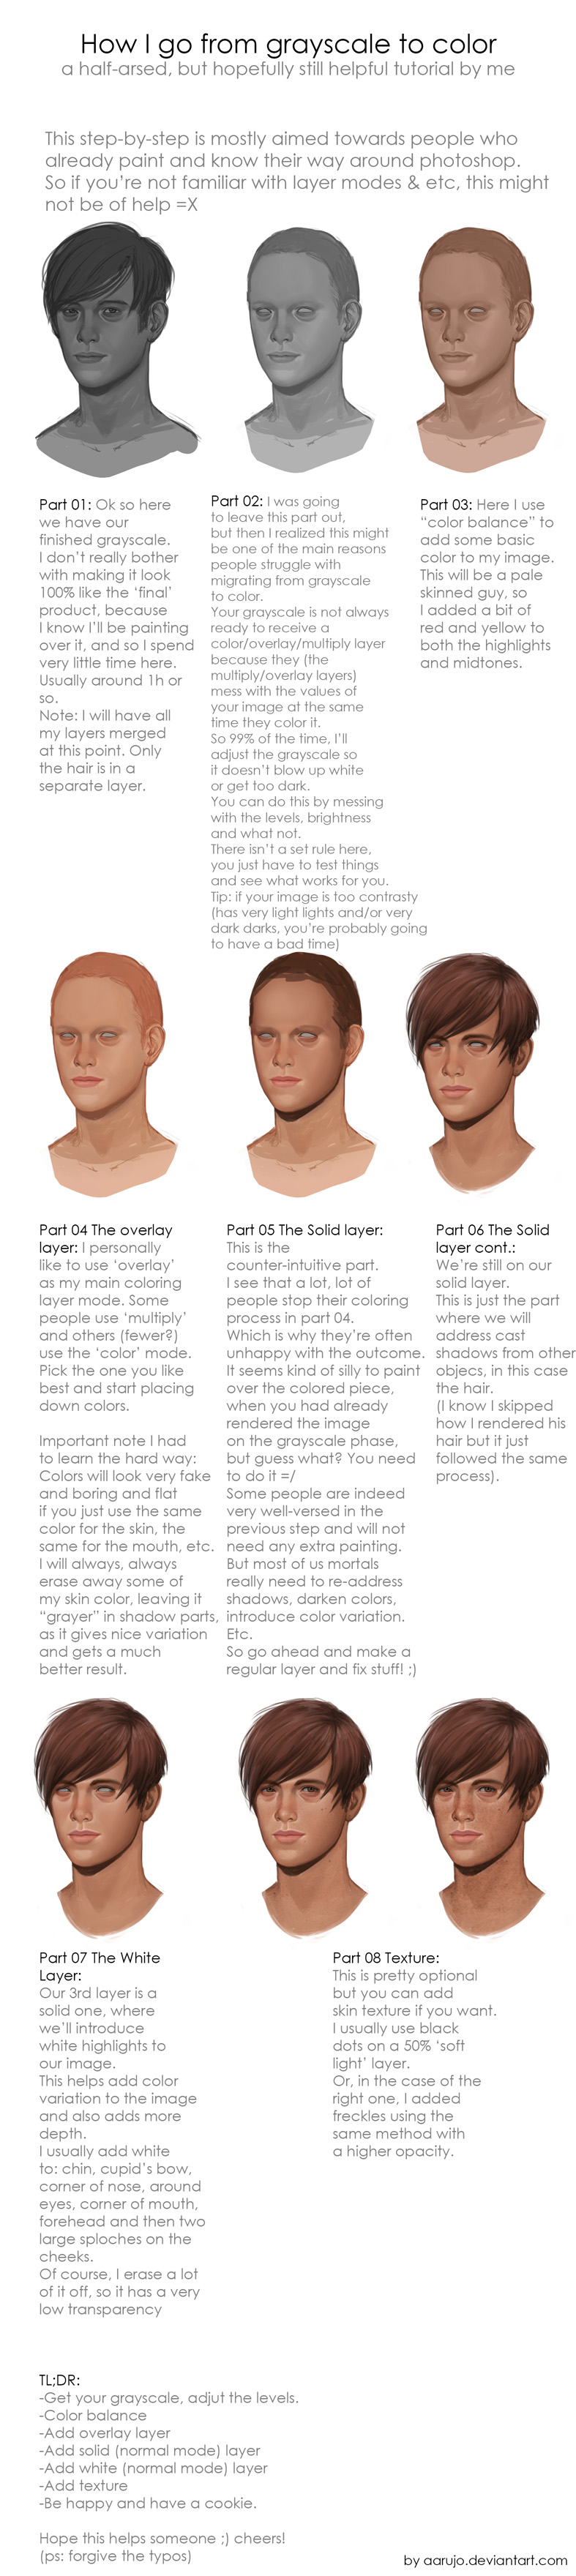 Tutorial - Coloring grayscale images by Aaraujo on DeviantArt